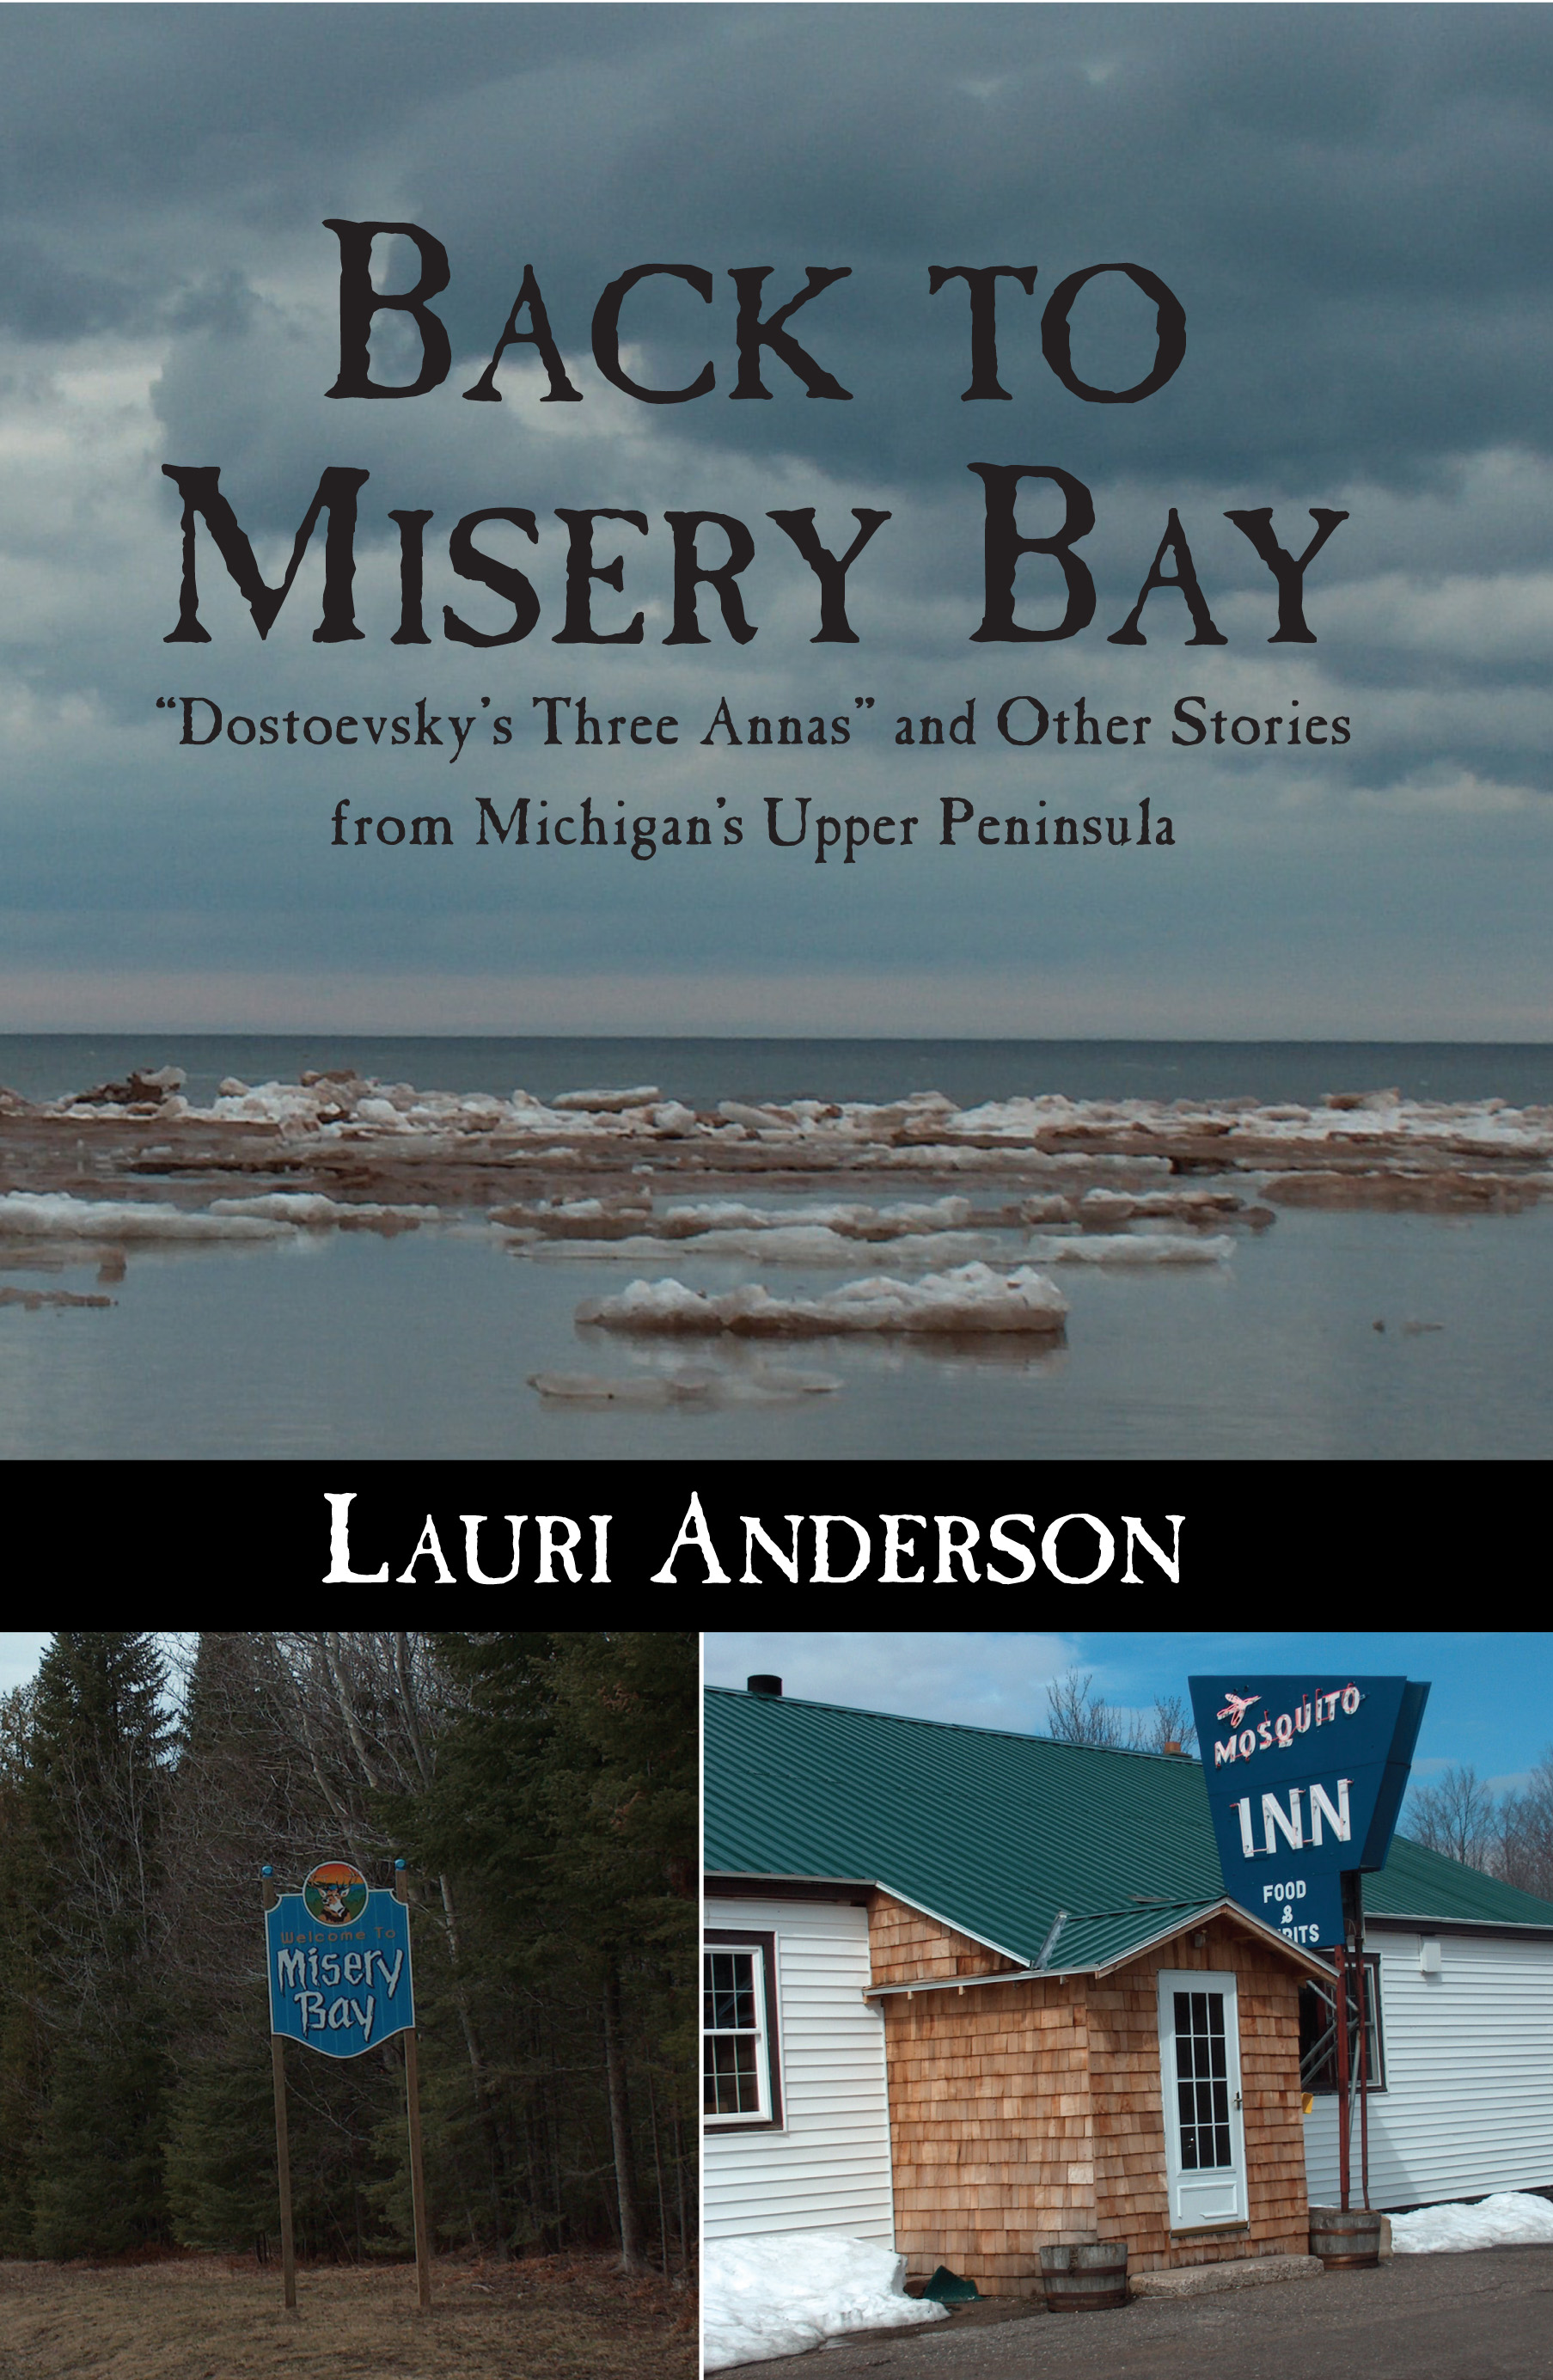 Back to Misery Bay